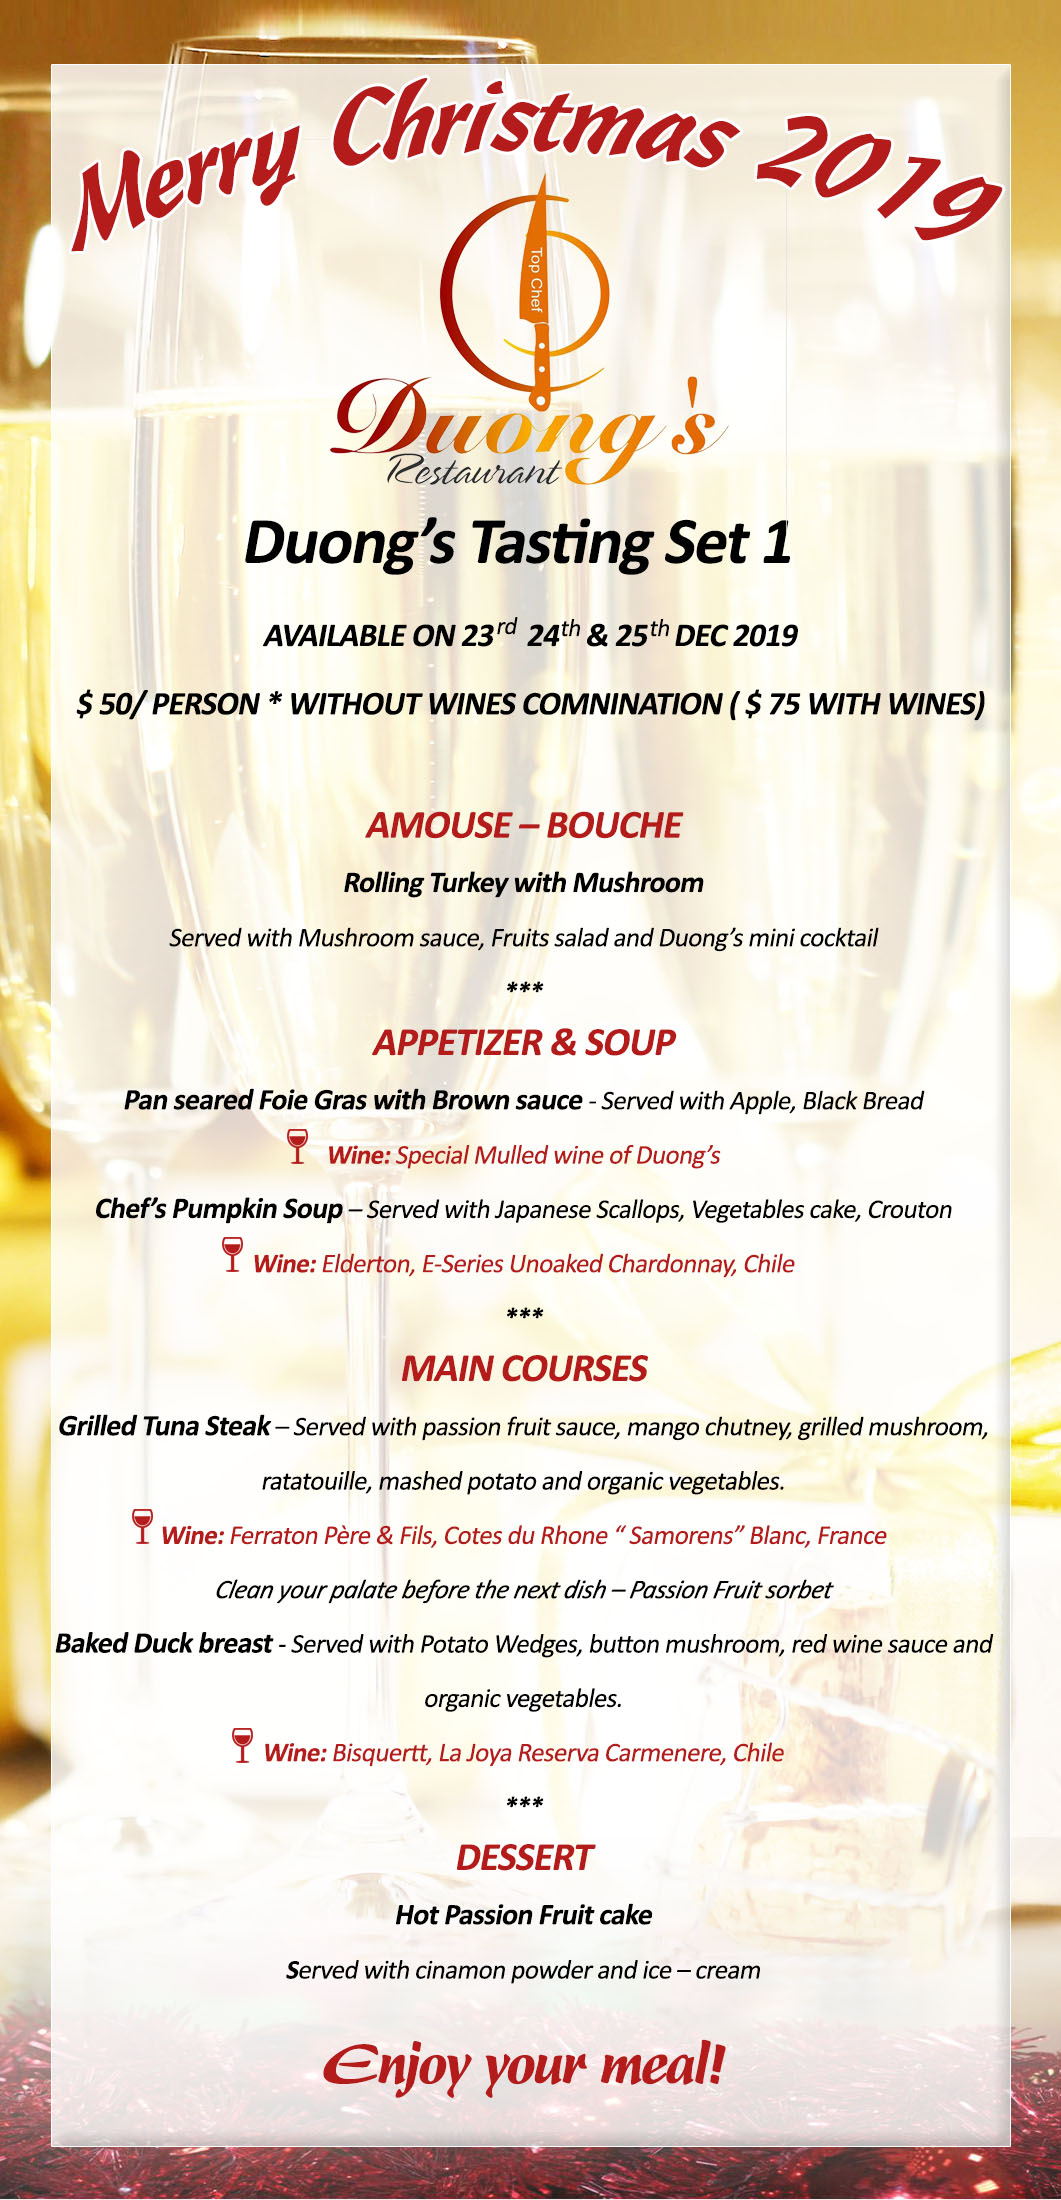 Special Duong's Set Menu for Christmas 2019